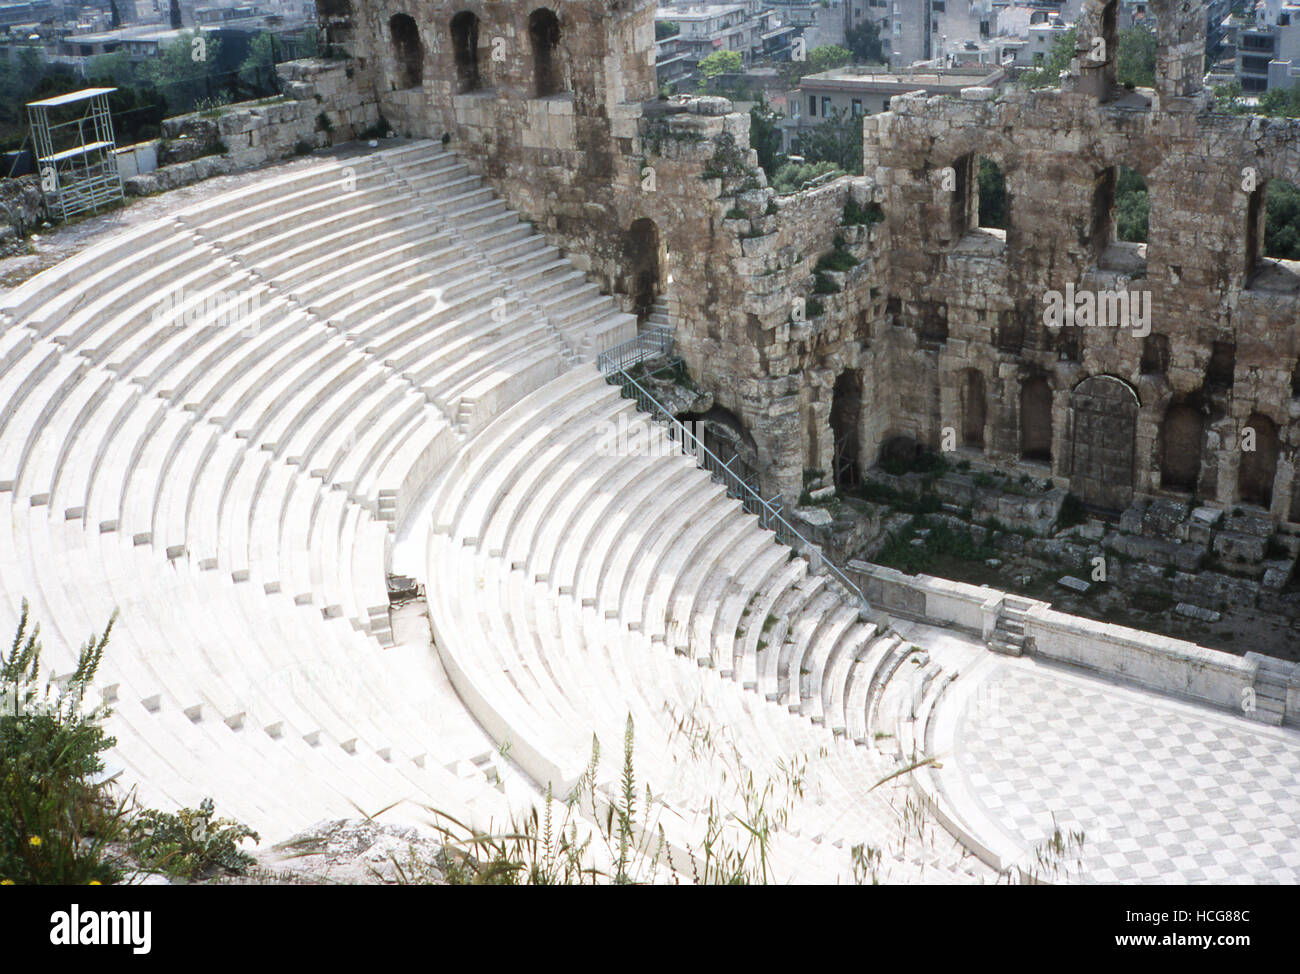 This photo, taken around 1990, shows a frontview of the Acropolis Theater in Athens, Greece. The theater is known Stock Photo